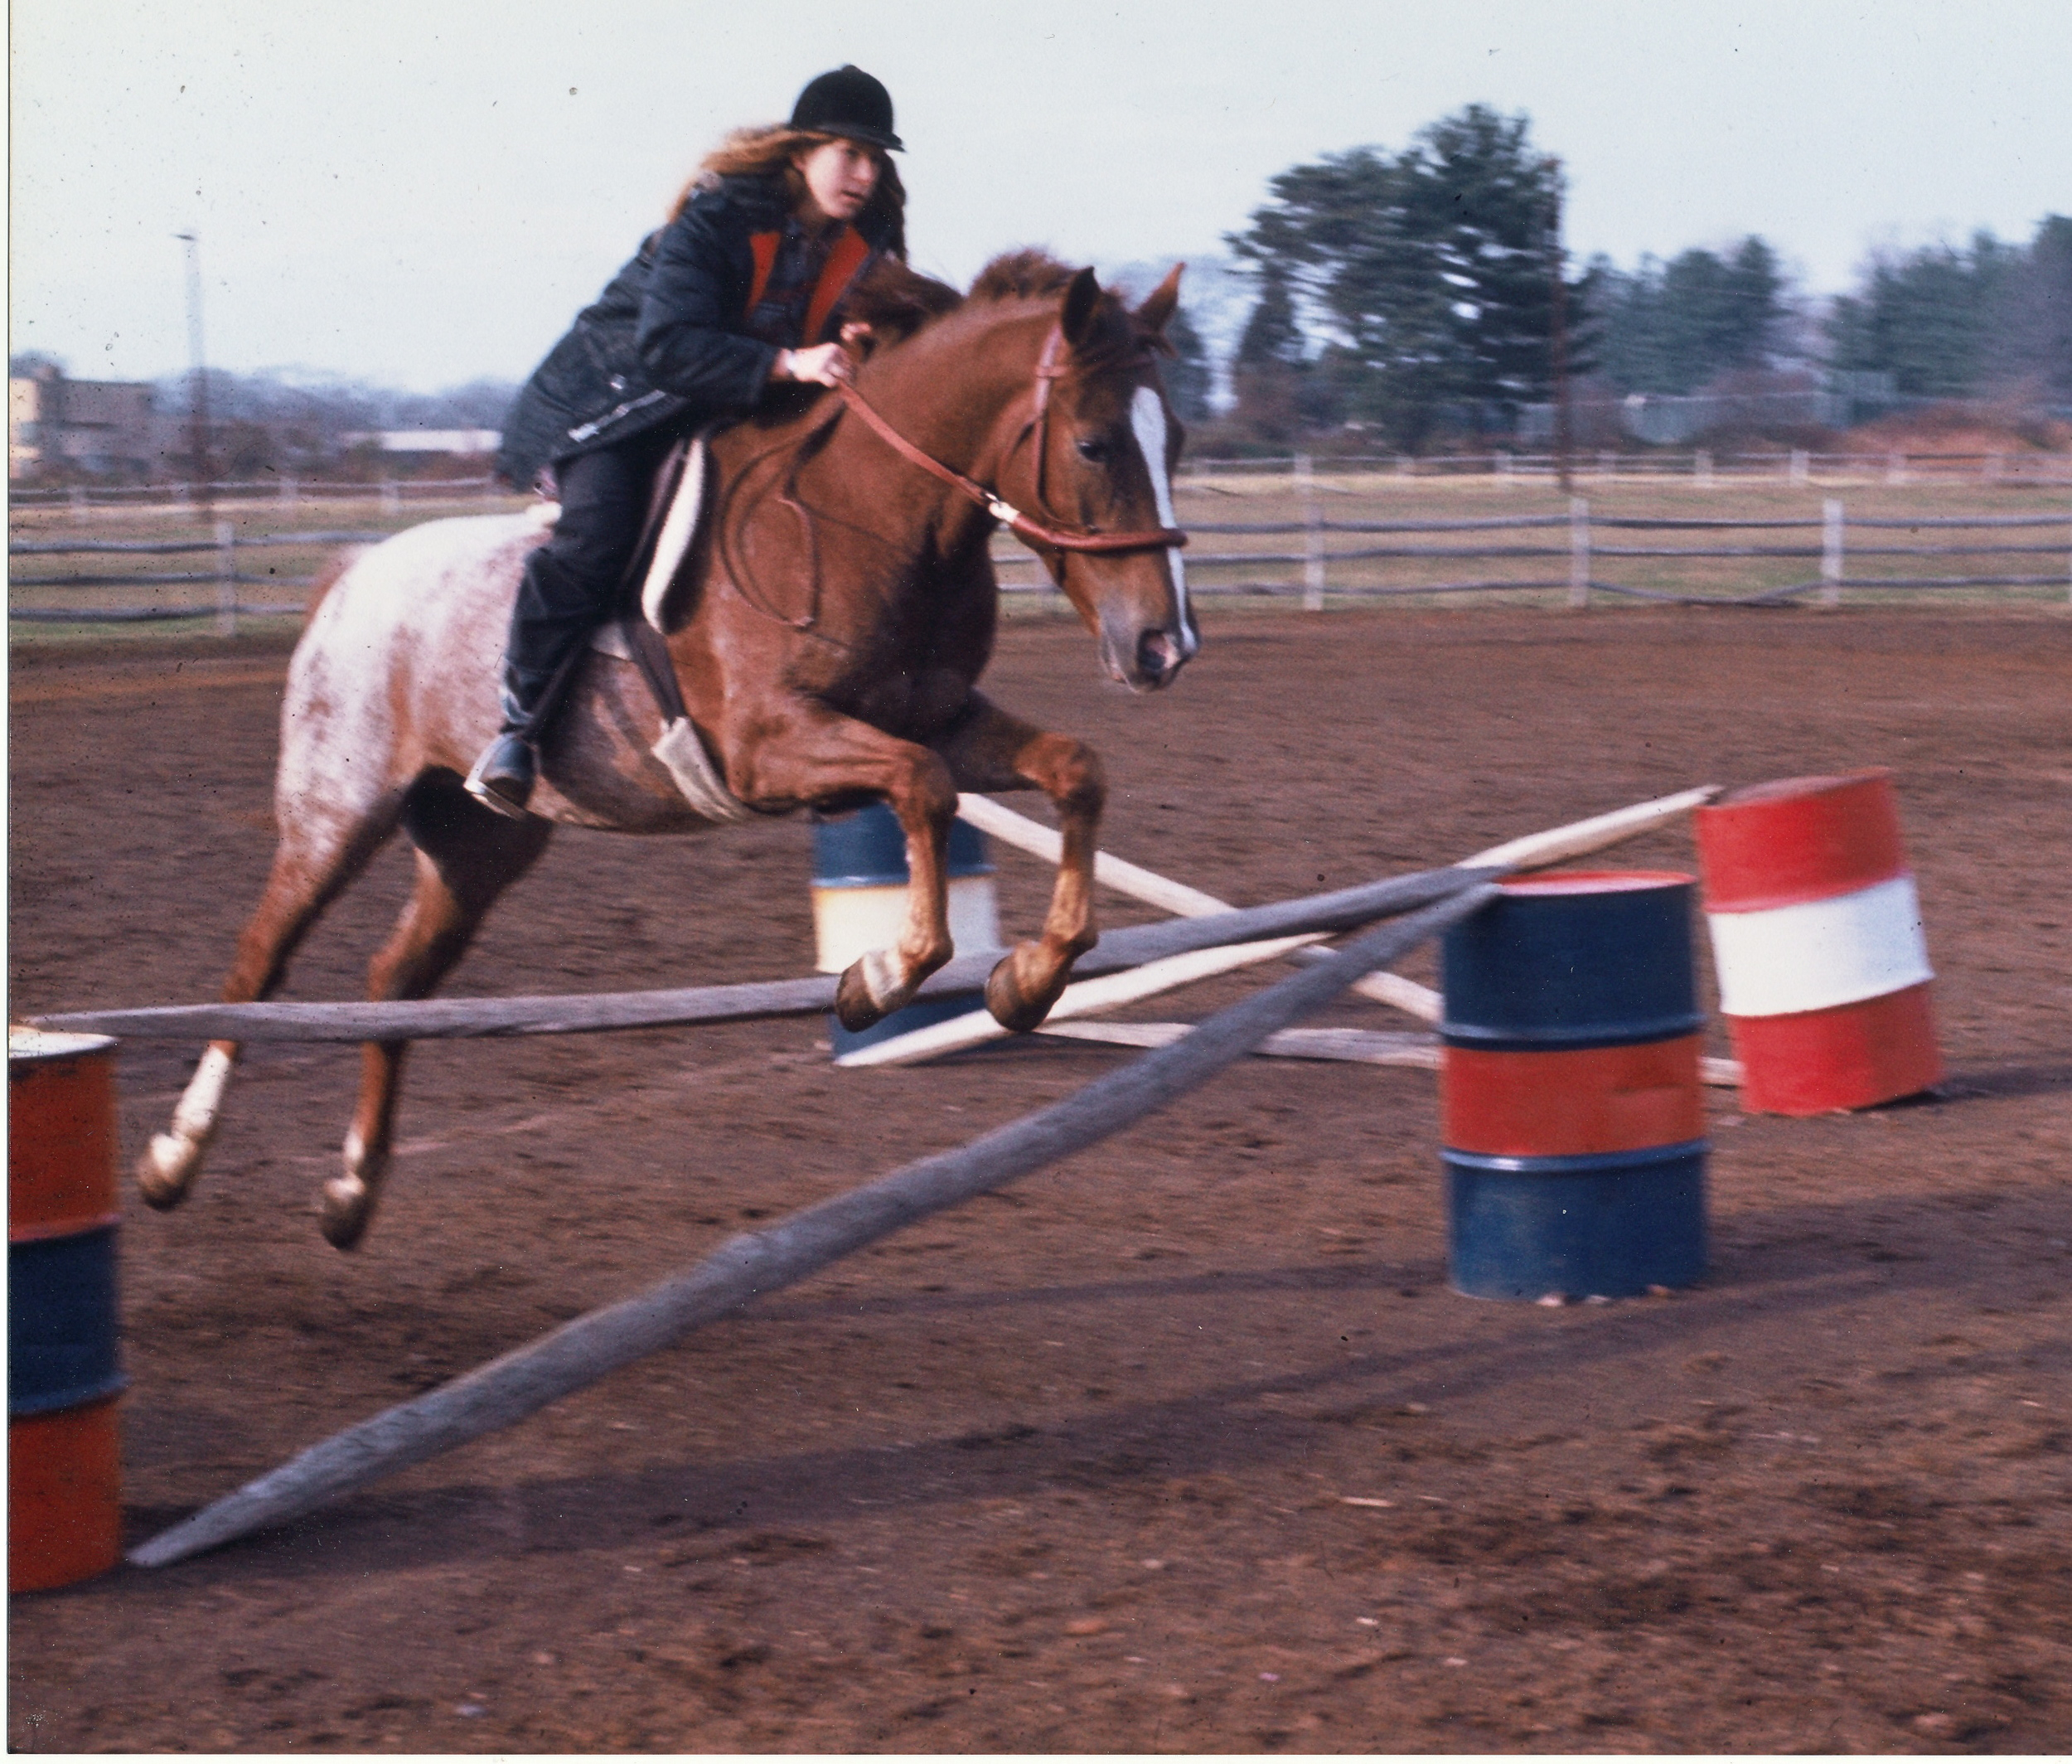 Jumping at age 16 on my horse Arapahoe